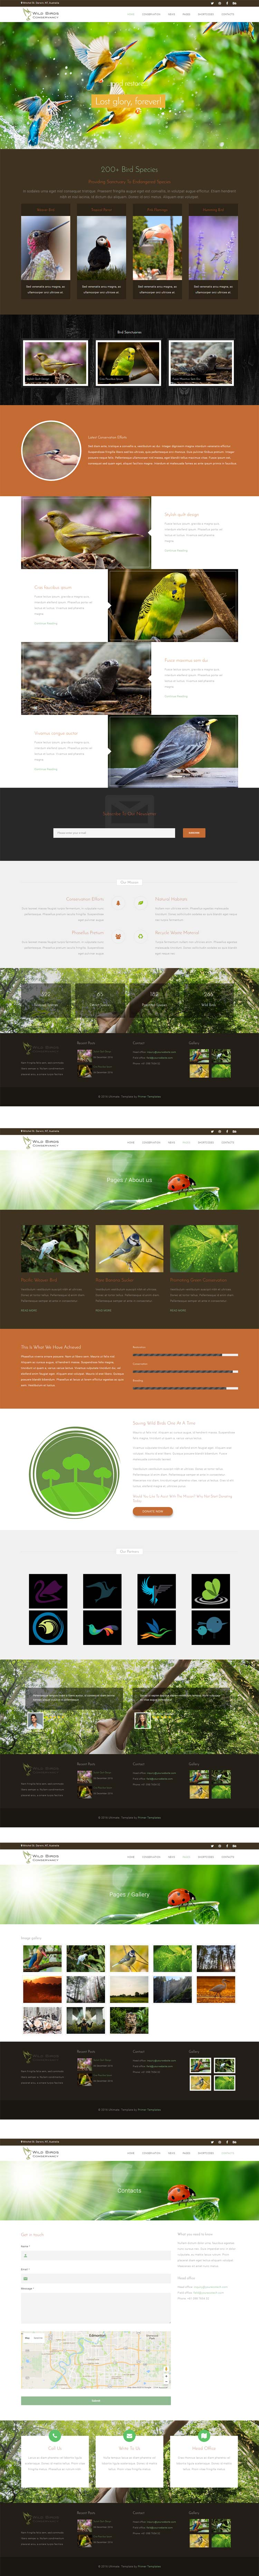 Bird Sanctuary Joomla! template